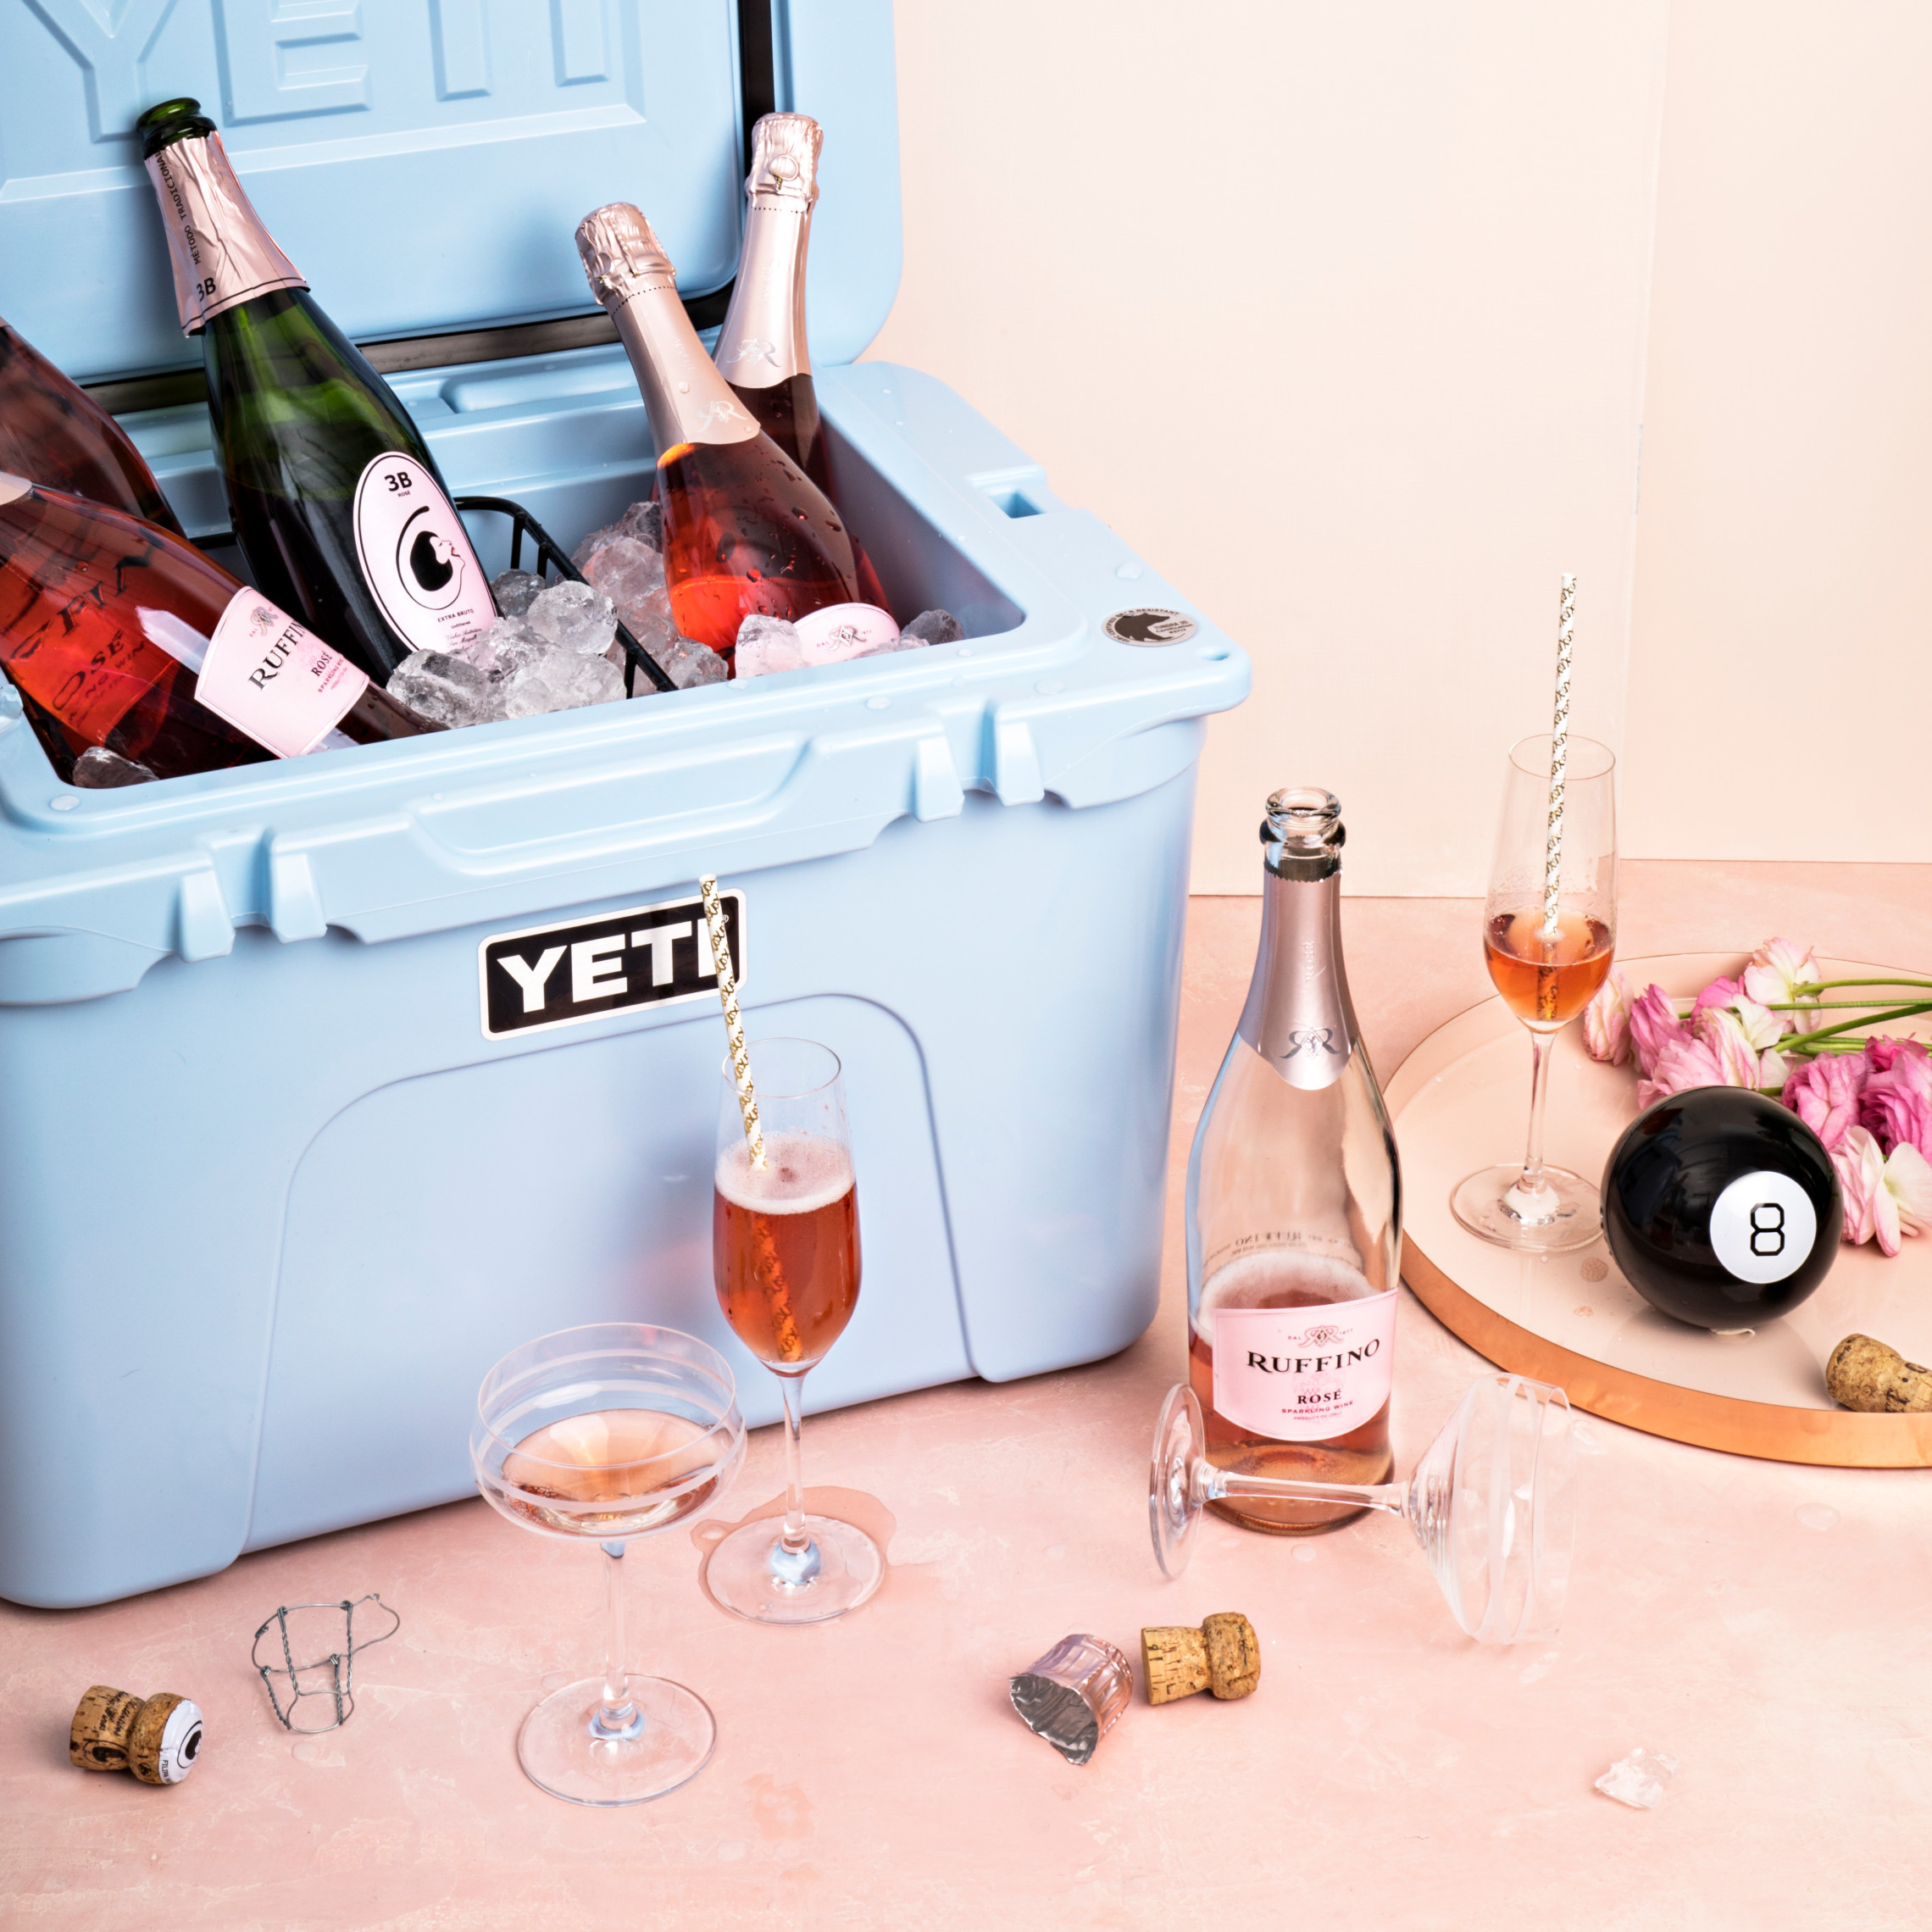 Yeti cooler filled with bottles of sparkling rose wine and glasses filled with wine in the background